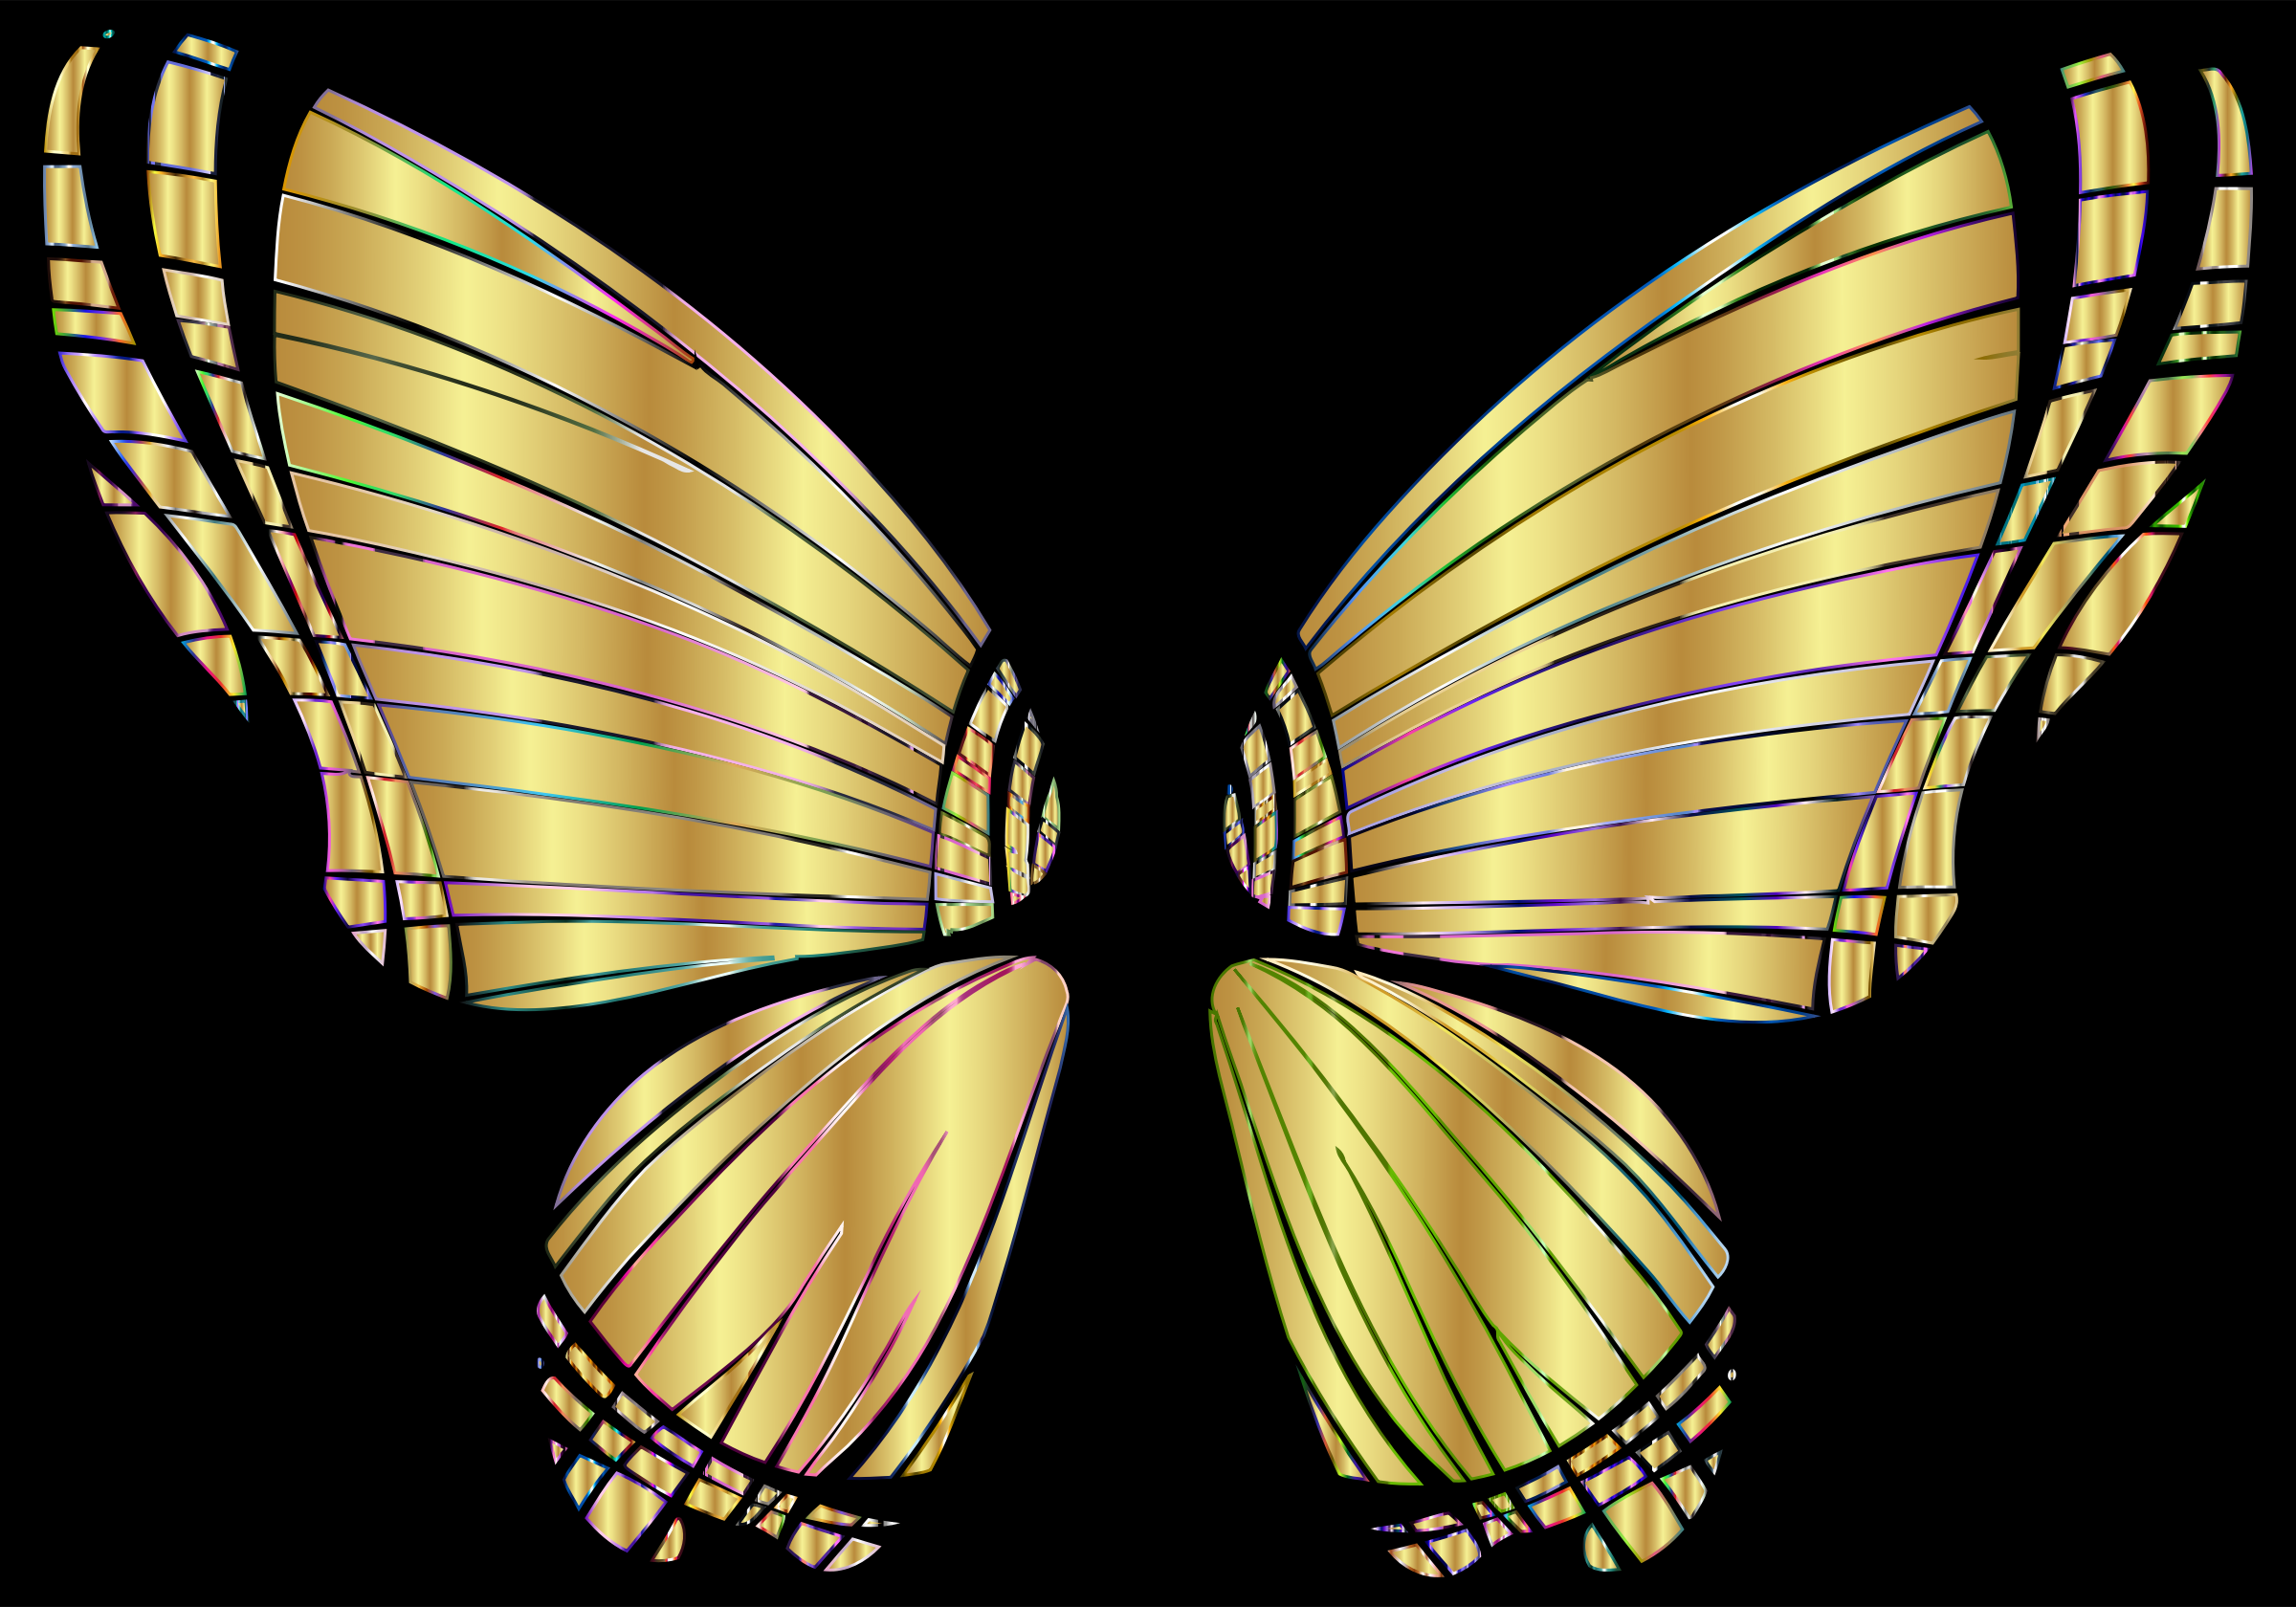 Clipart - RGB Butterfly Silhouette 10 12